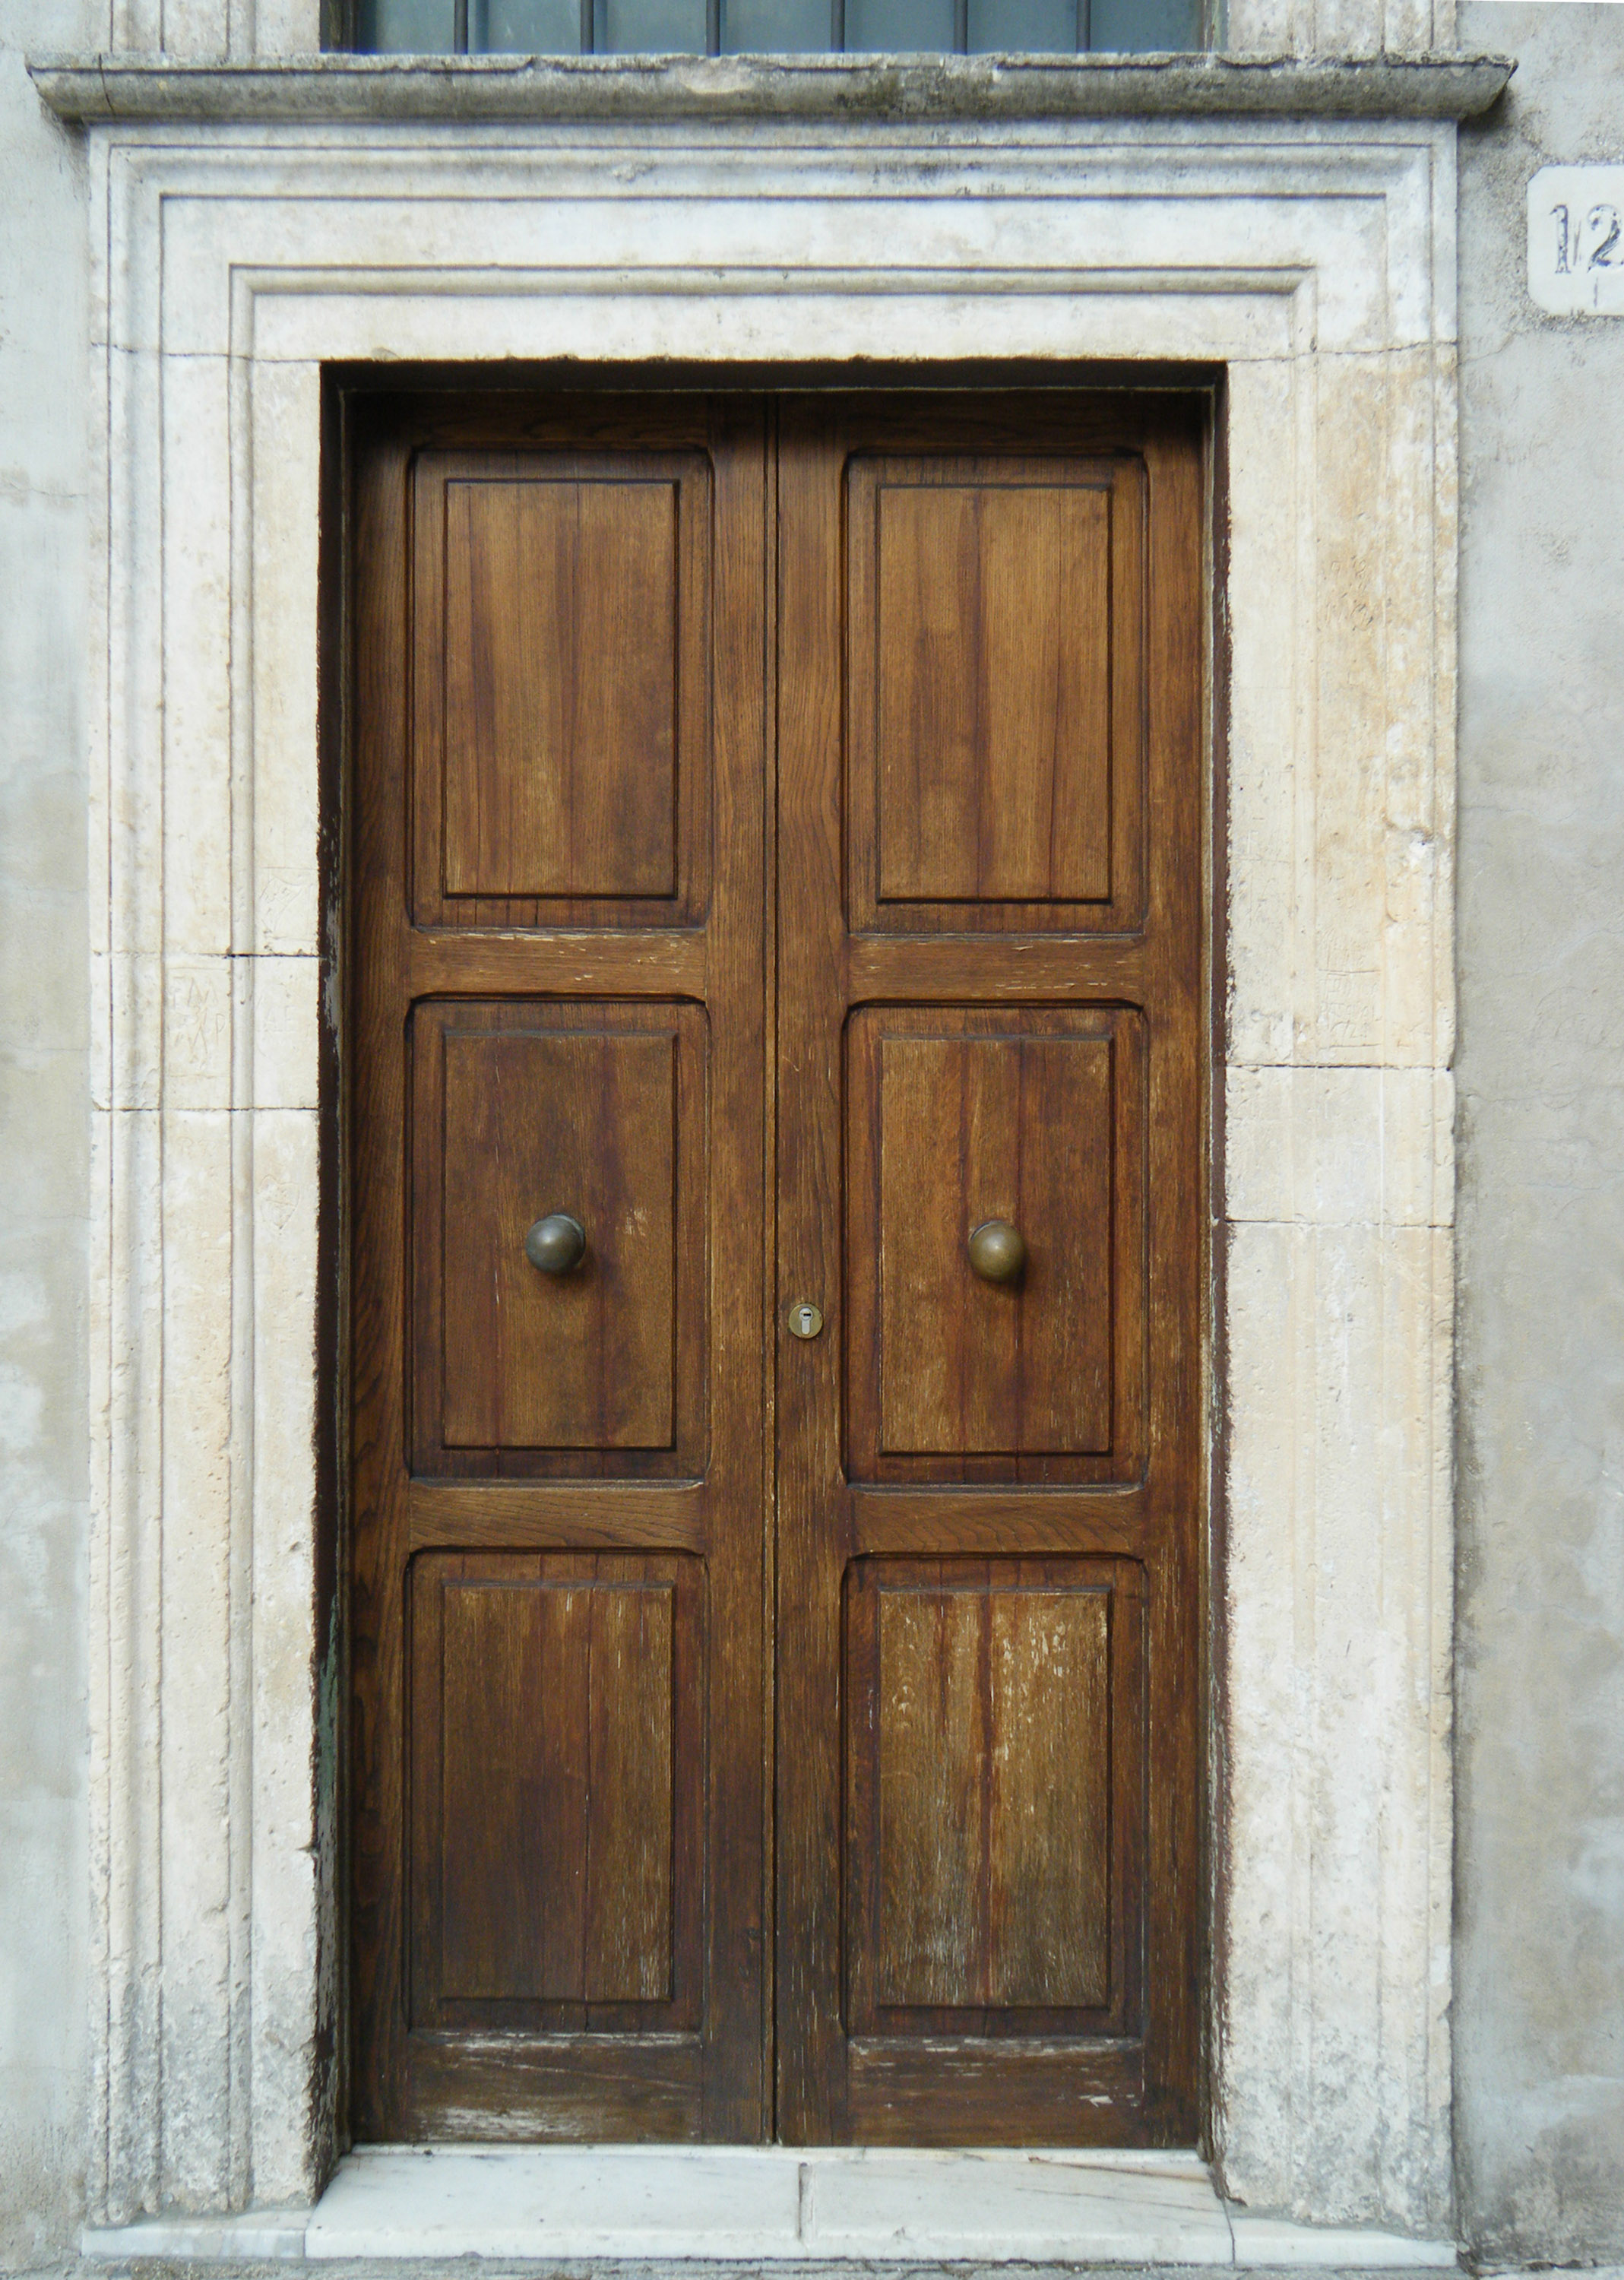 Texture - neoclassical wood door 14 - Neoclassical - luGher Texture ...